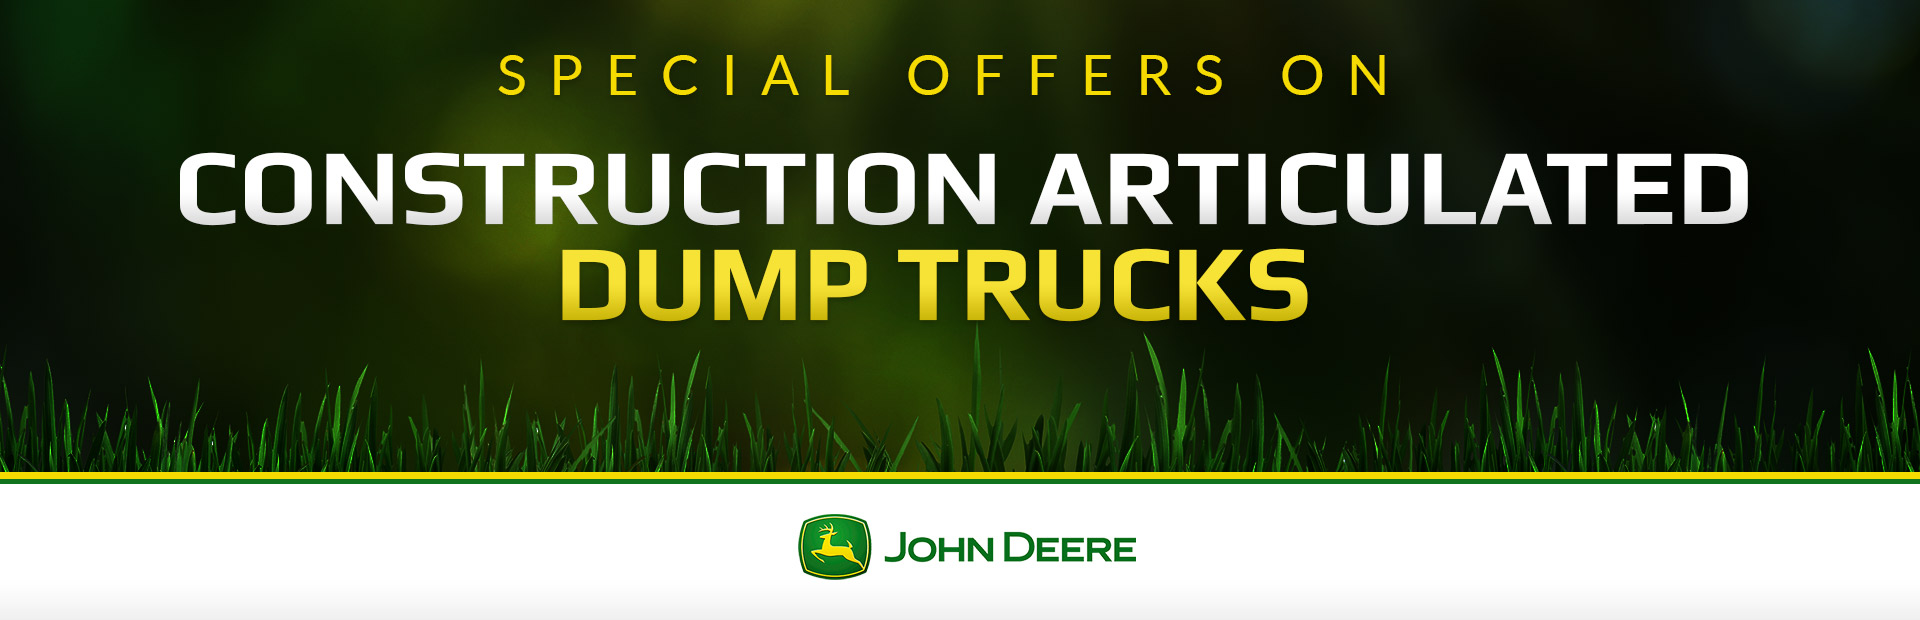 John Deere: Construction Articulated Dump Trucks